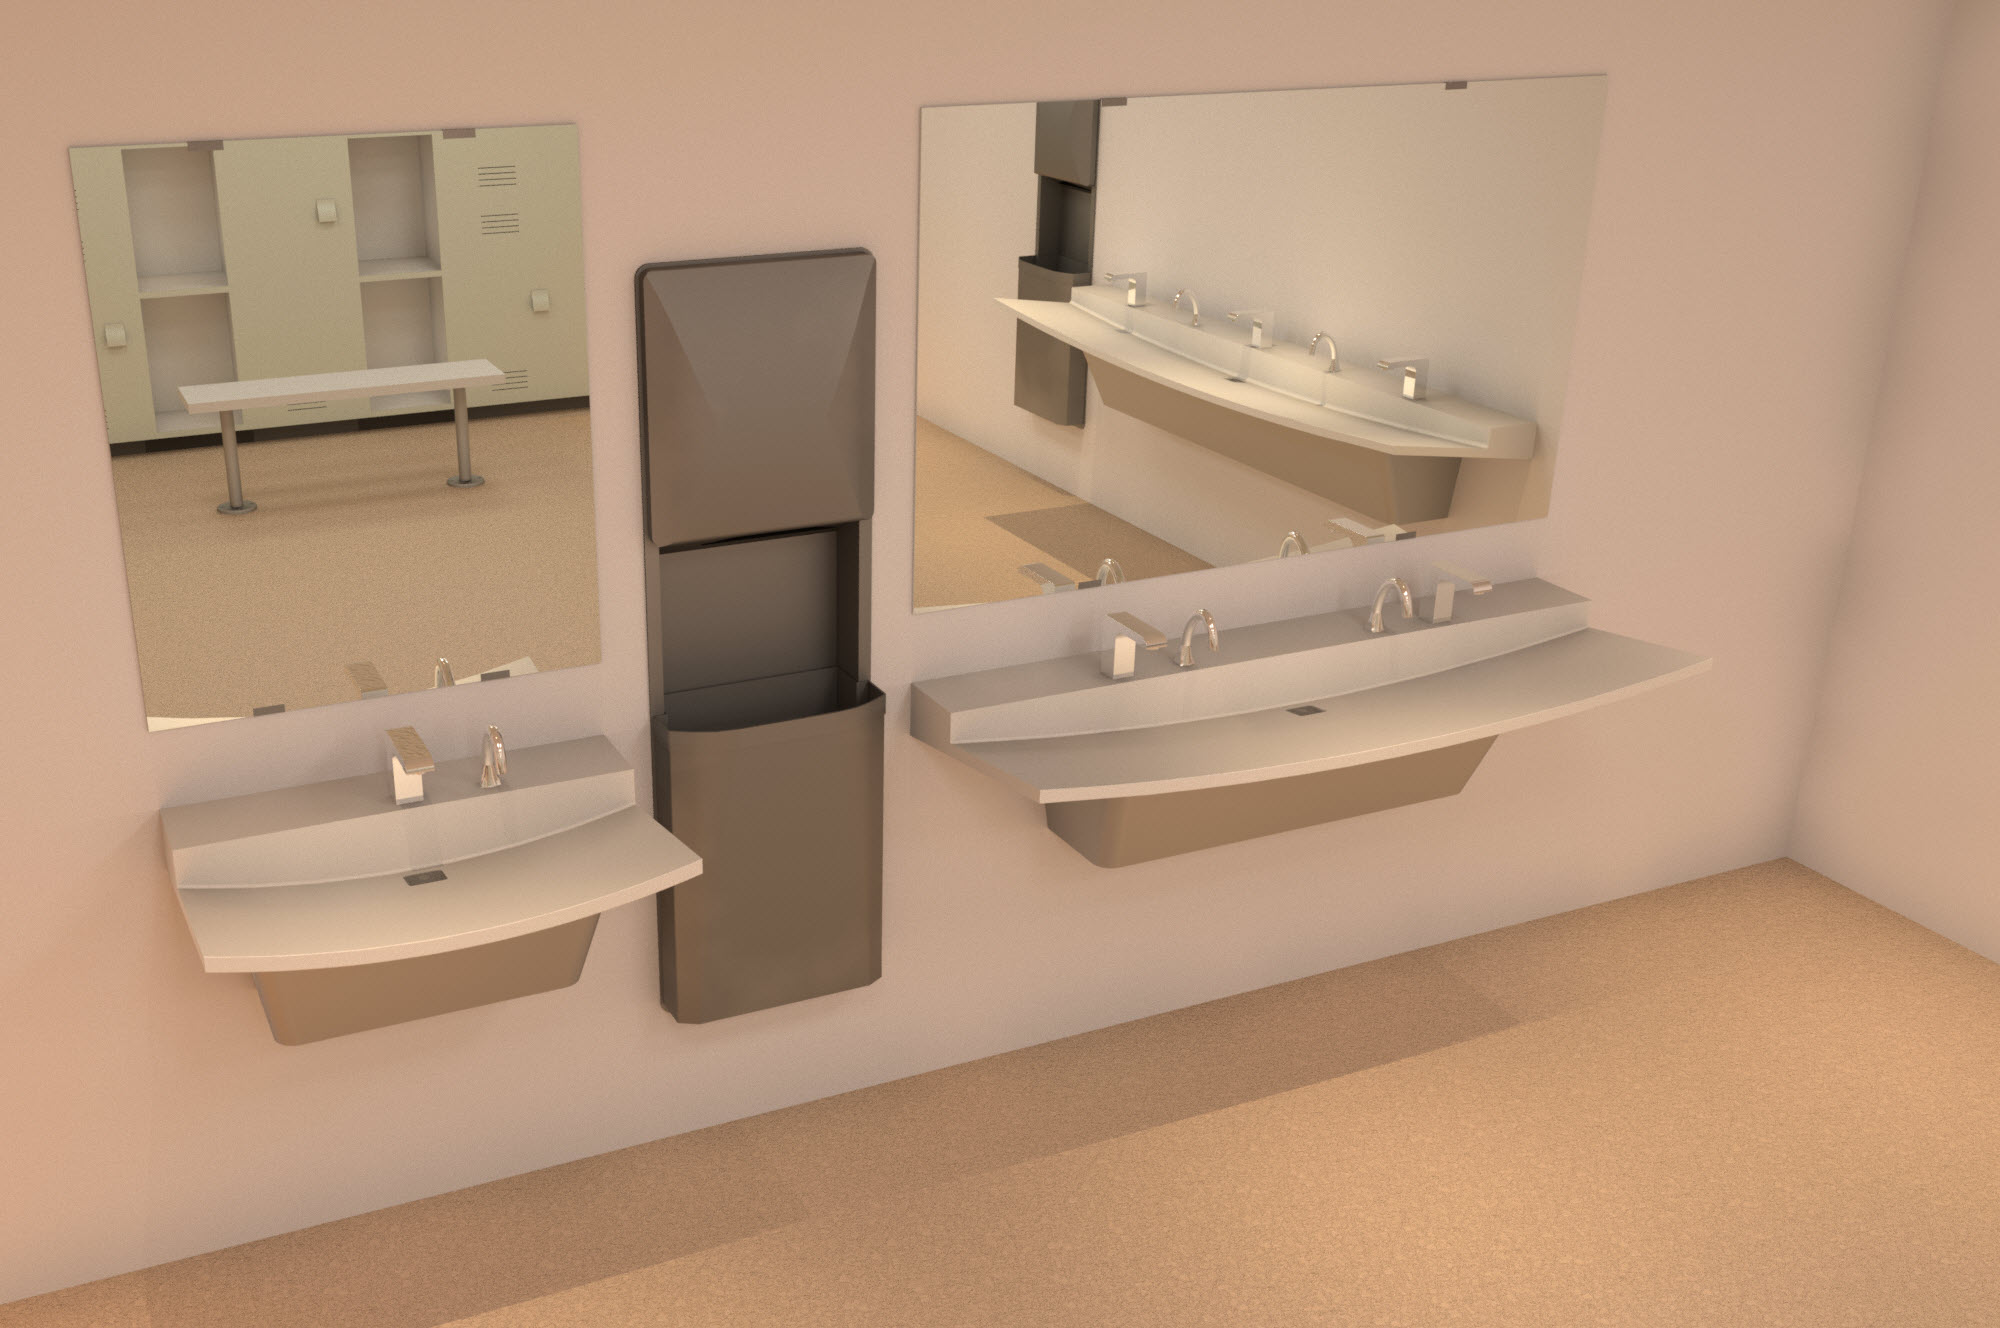 Bradley Verge L-Series Lavatory Revit Models